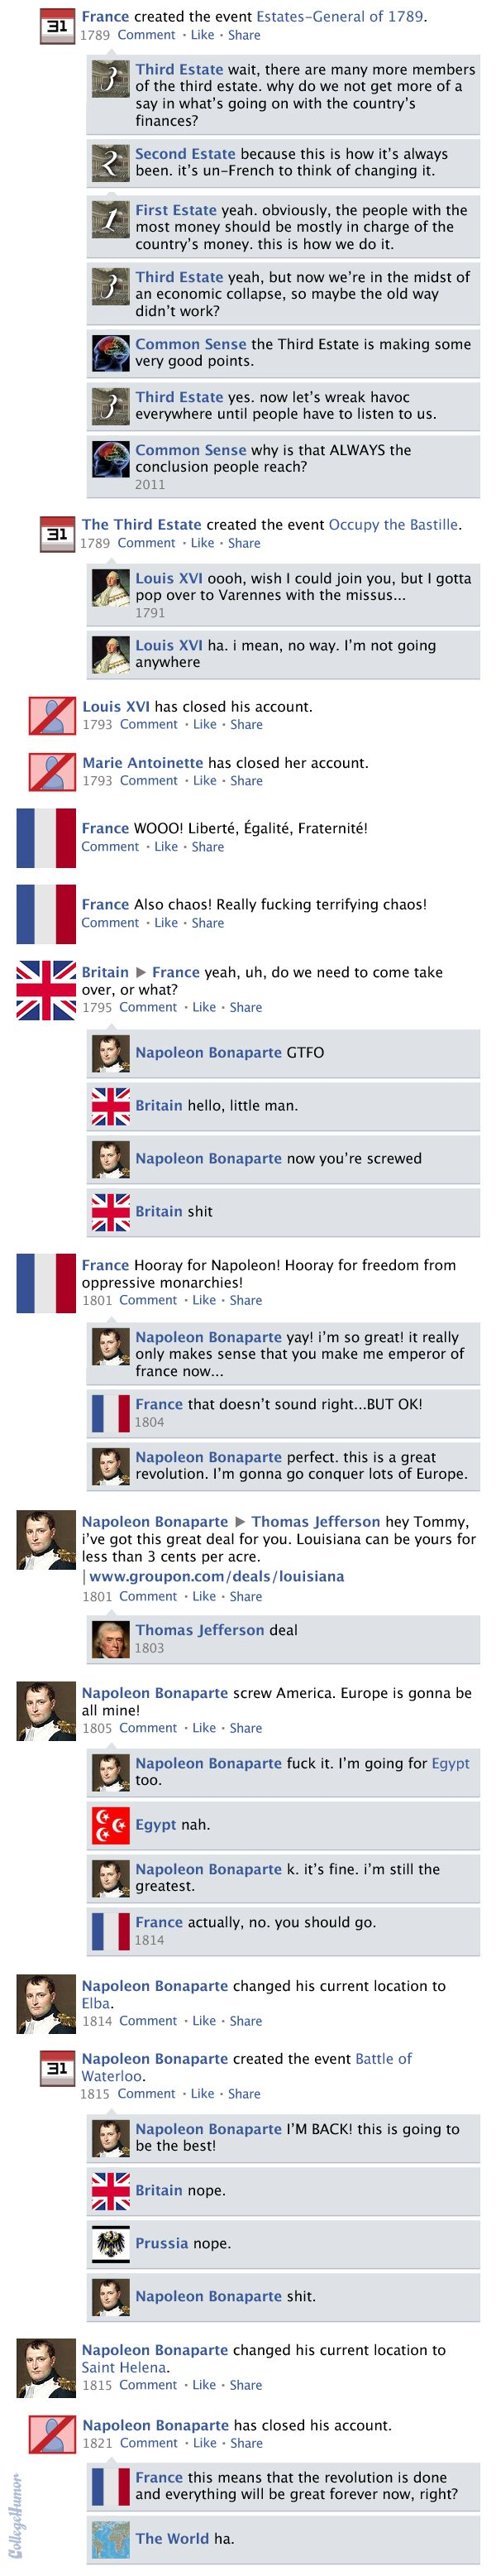 best ideas about french revolution the french french revolution i would obviously have to change a lot of the language